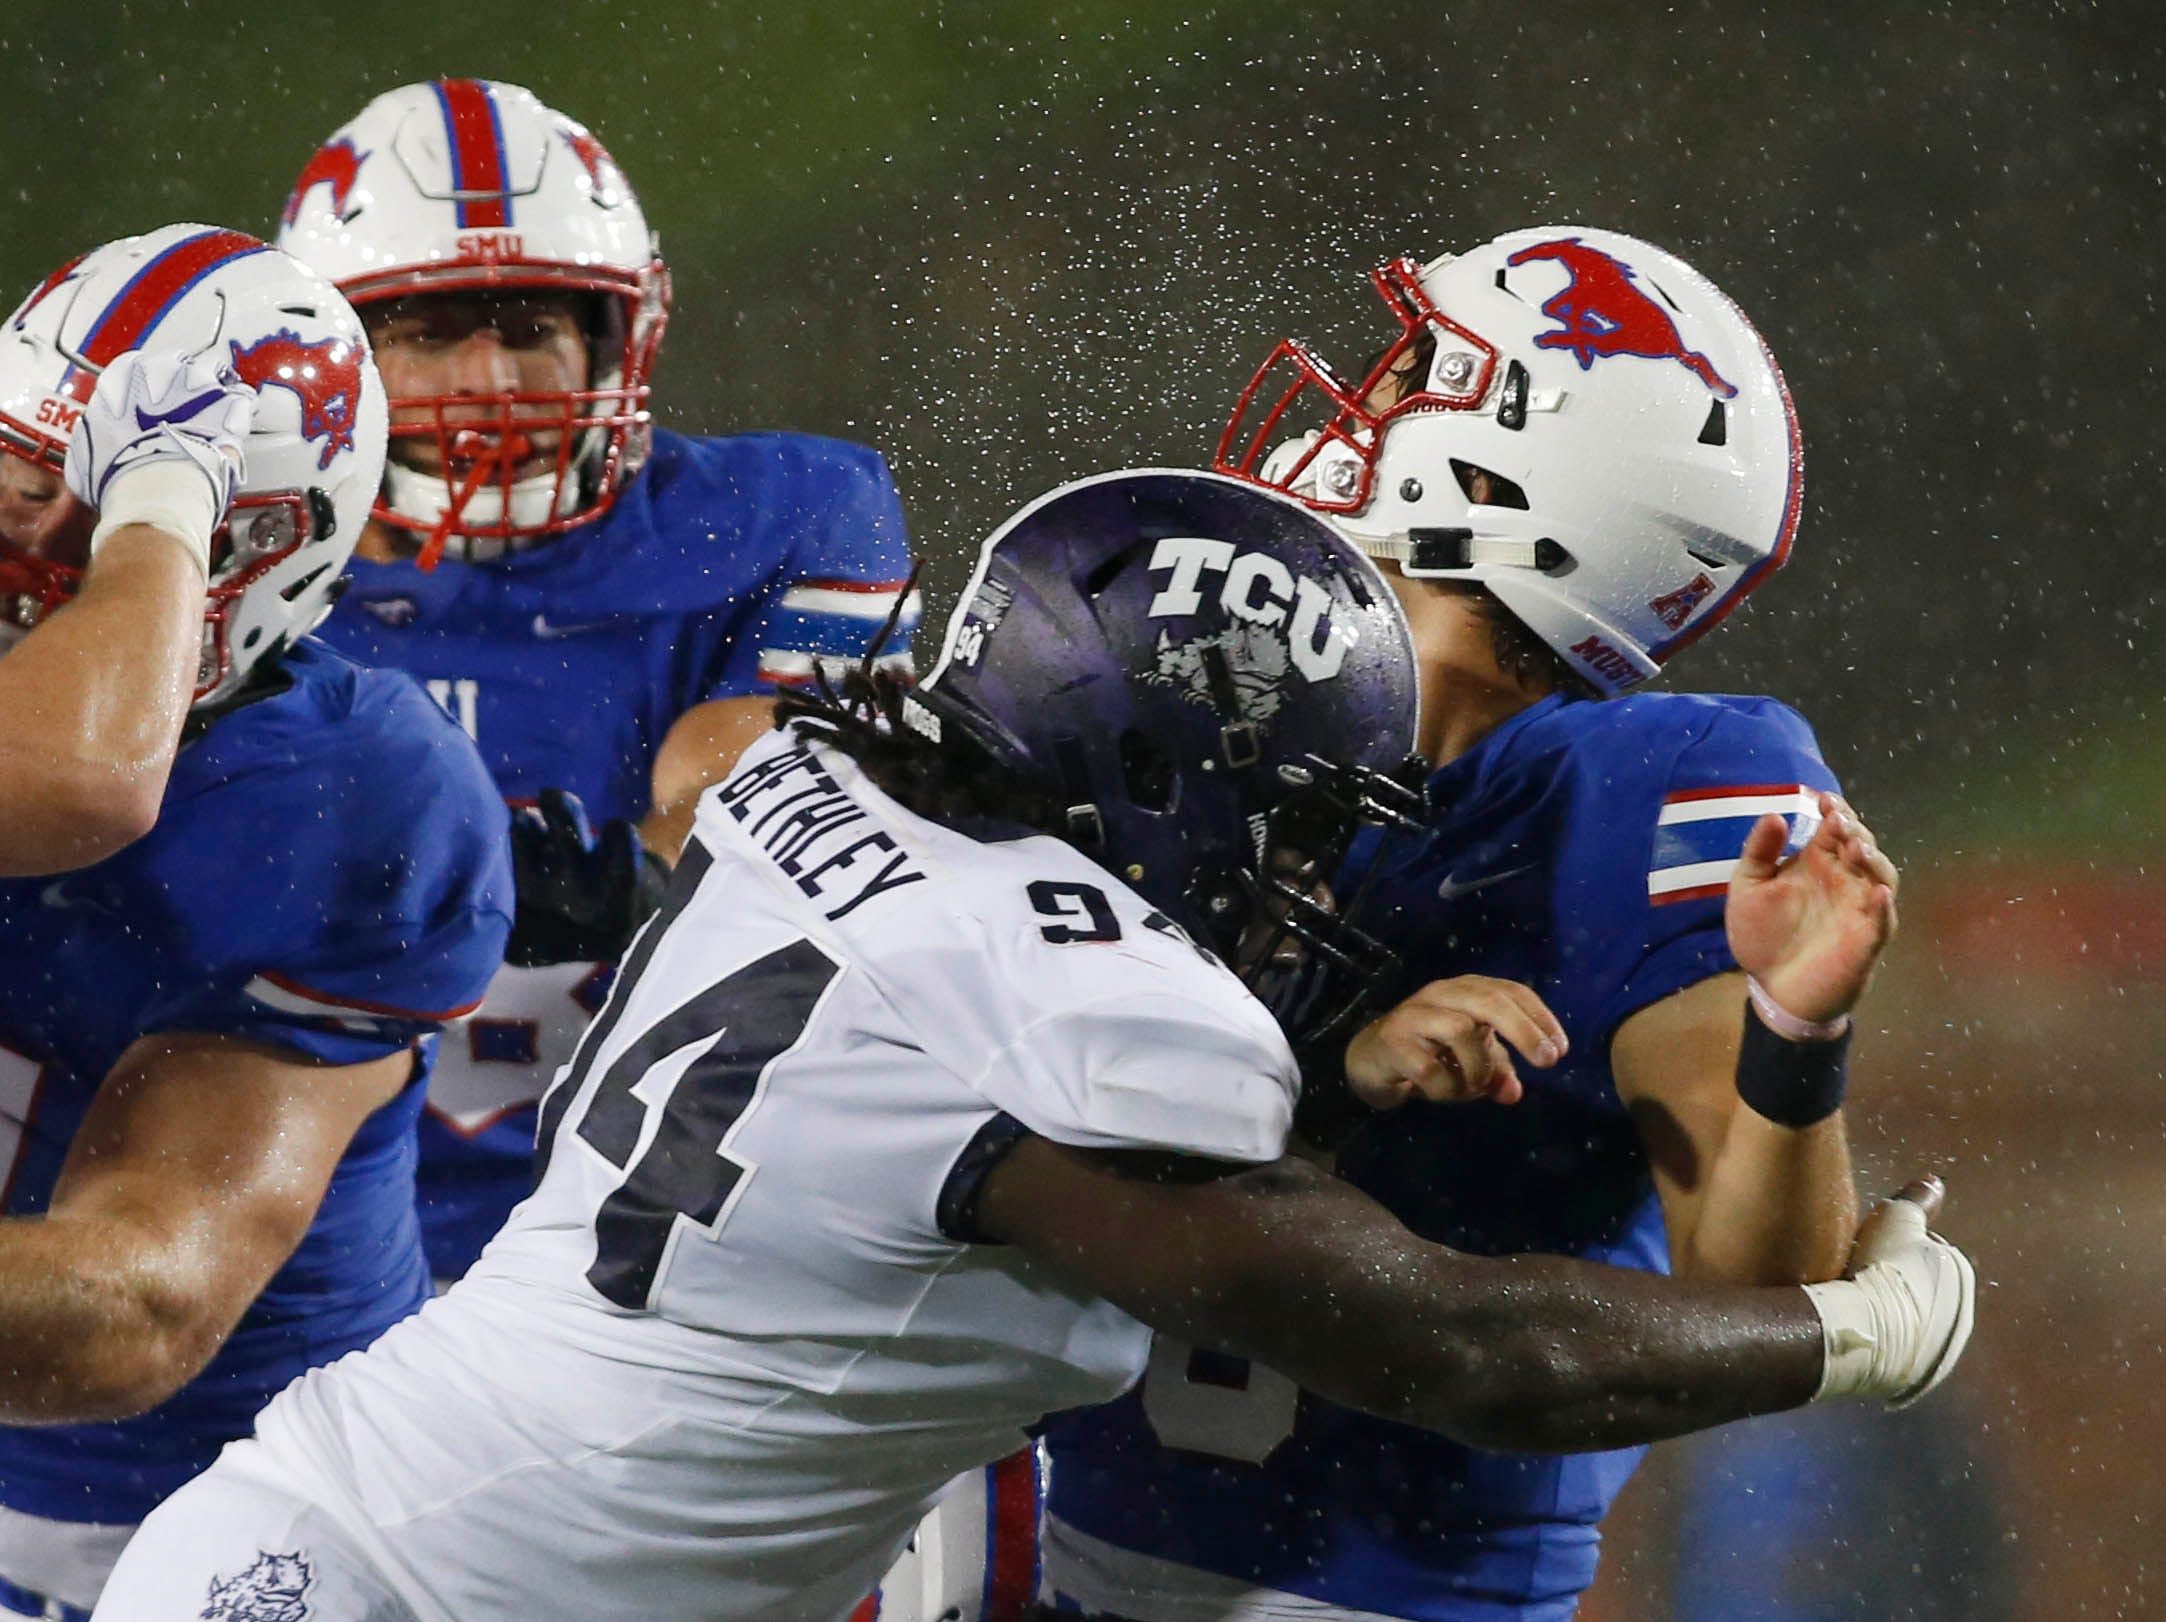 Southern Methodist Mustangs quarterback Ben Hicks (8) is hit by TCU Horned Frogs defensive tackle Corey Bethley (94) in the second quarter at Gerald J. Ford Stadium.